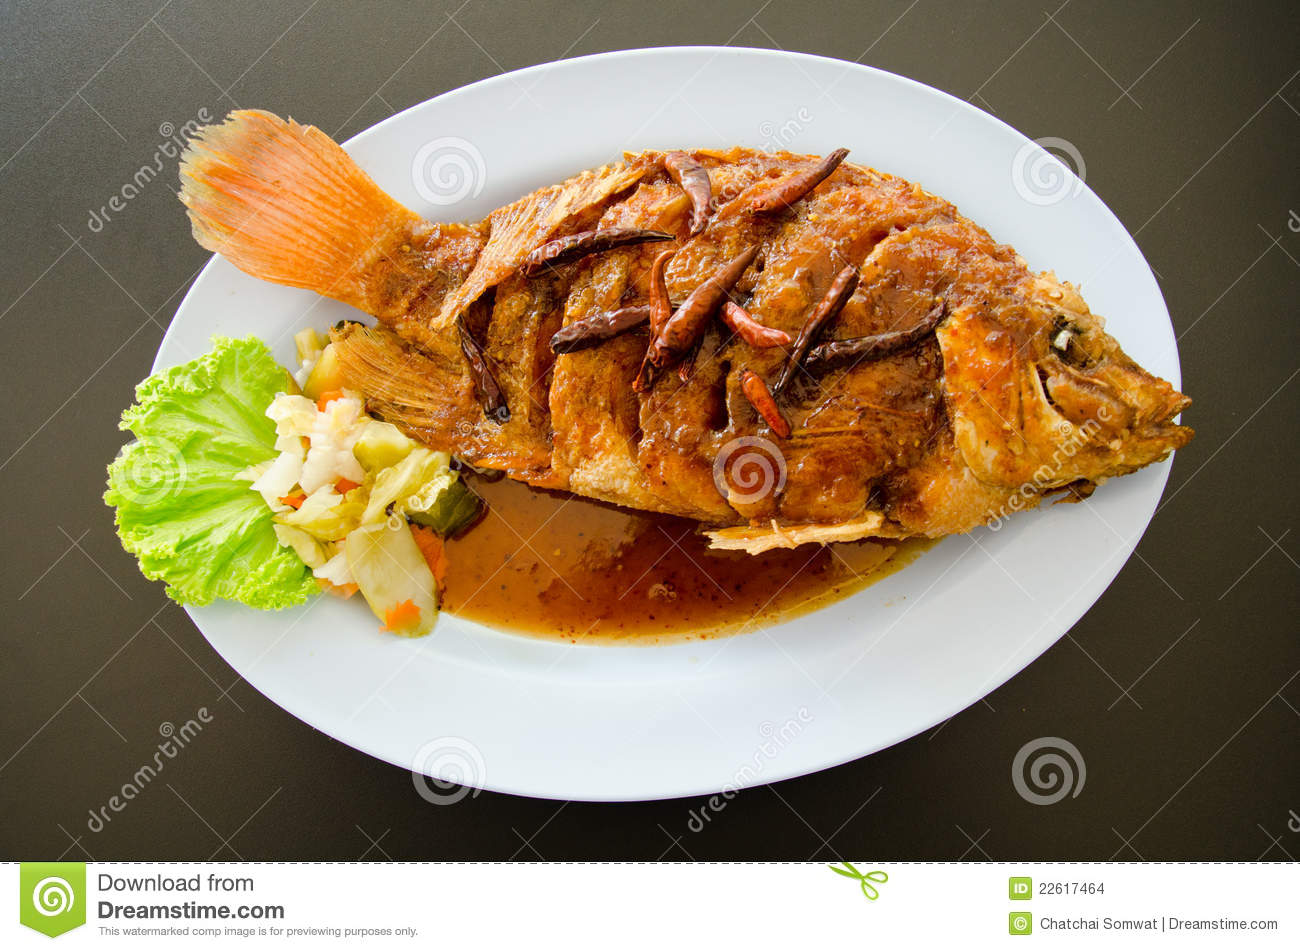 Fried Fish Topped With Sweet Sauce. Stock Images - Image: 22617464